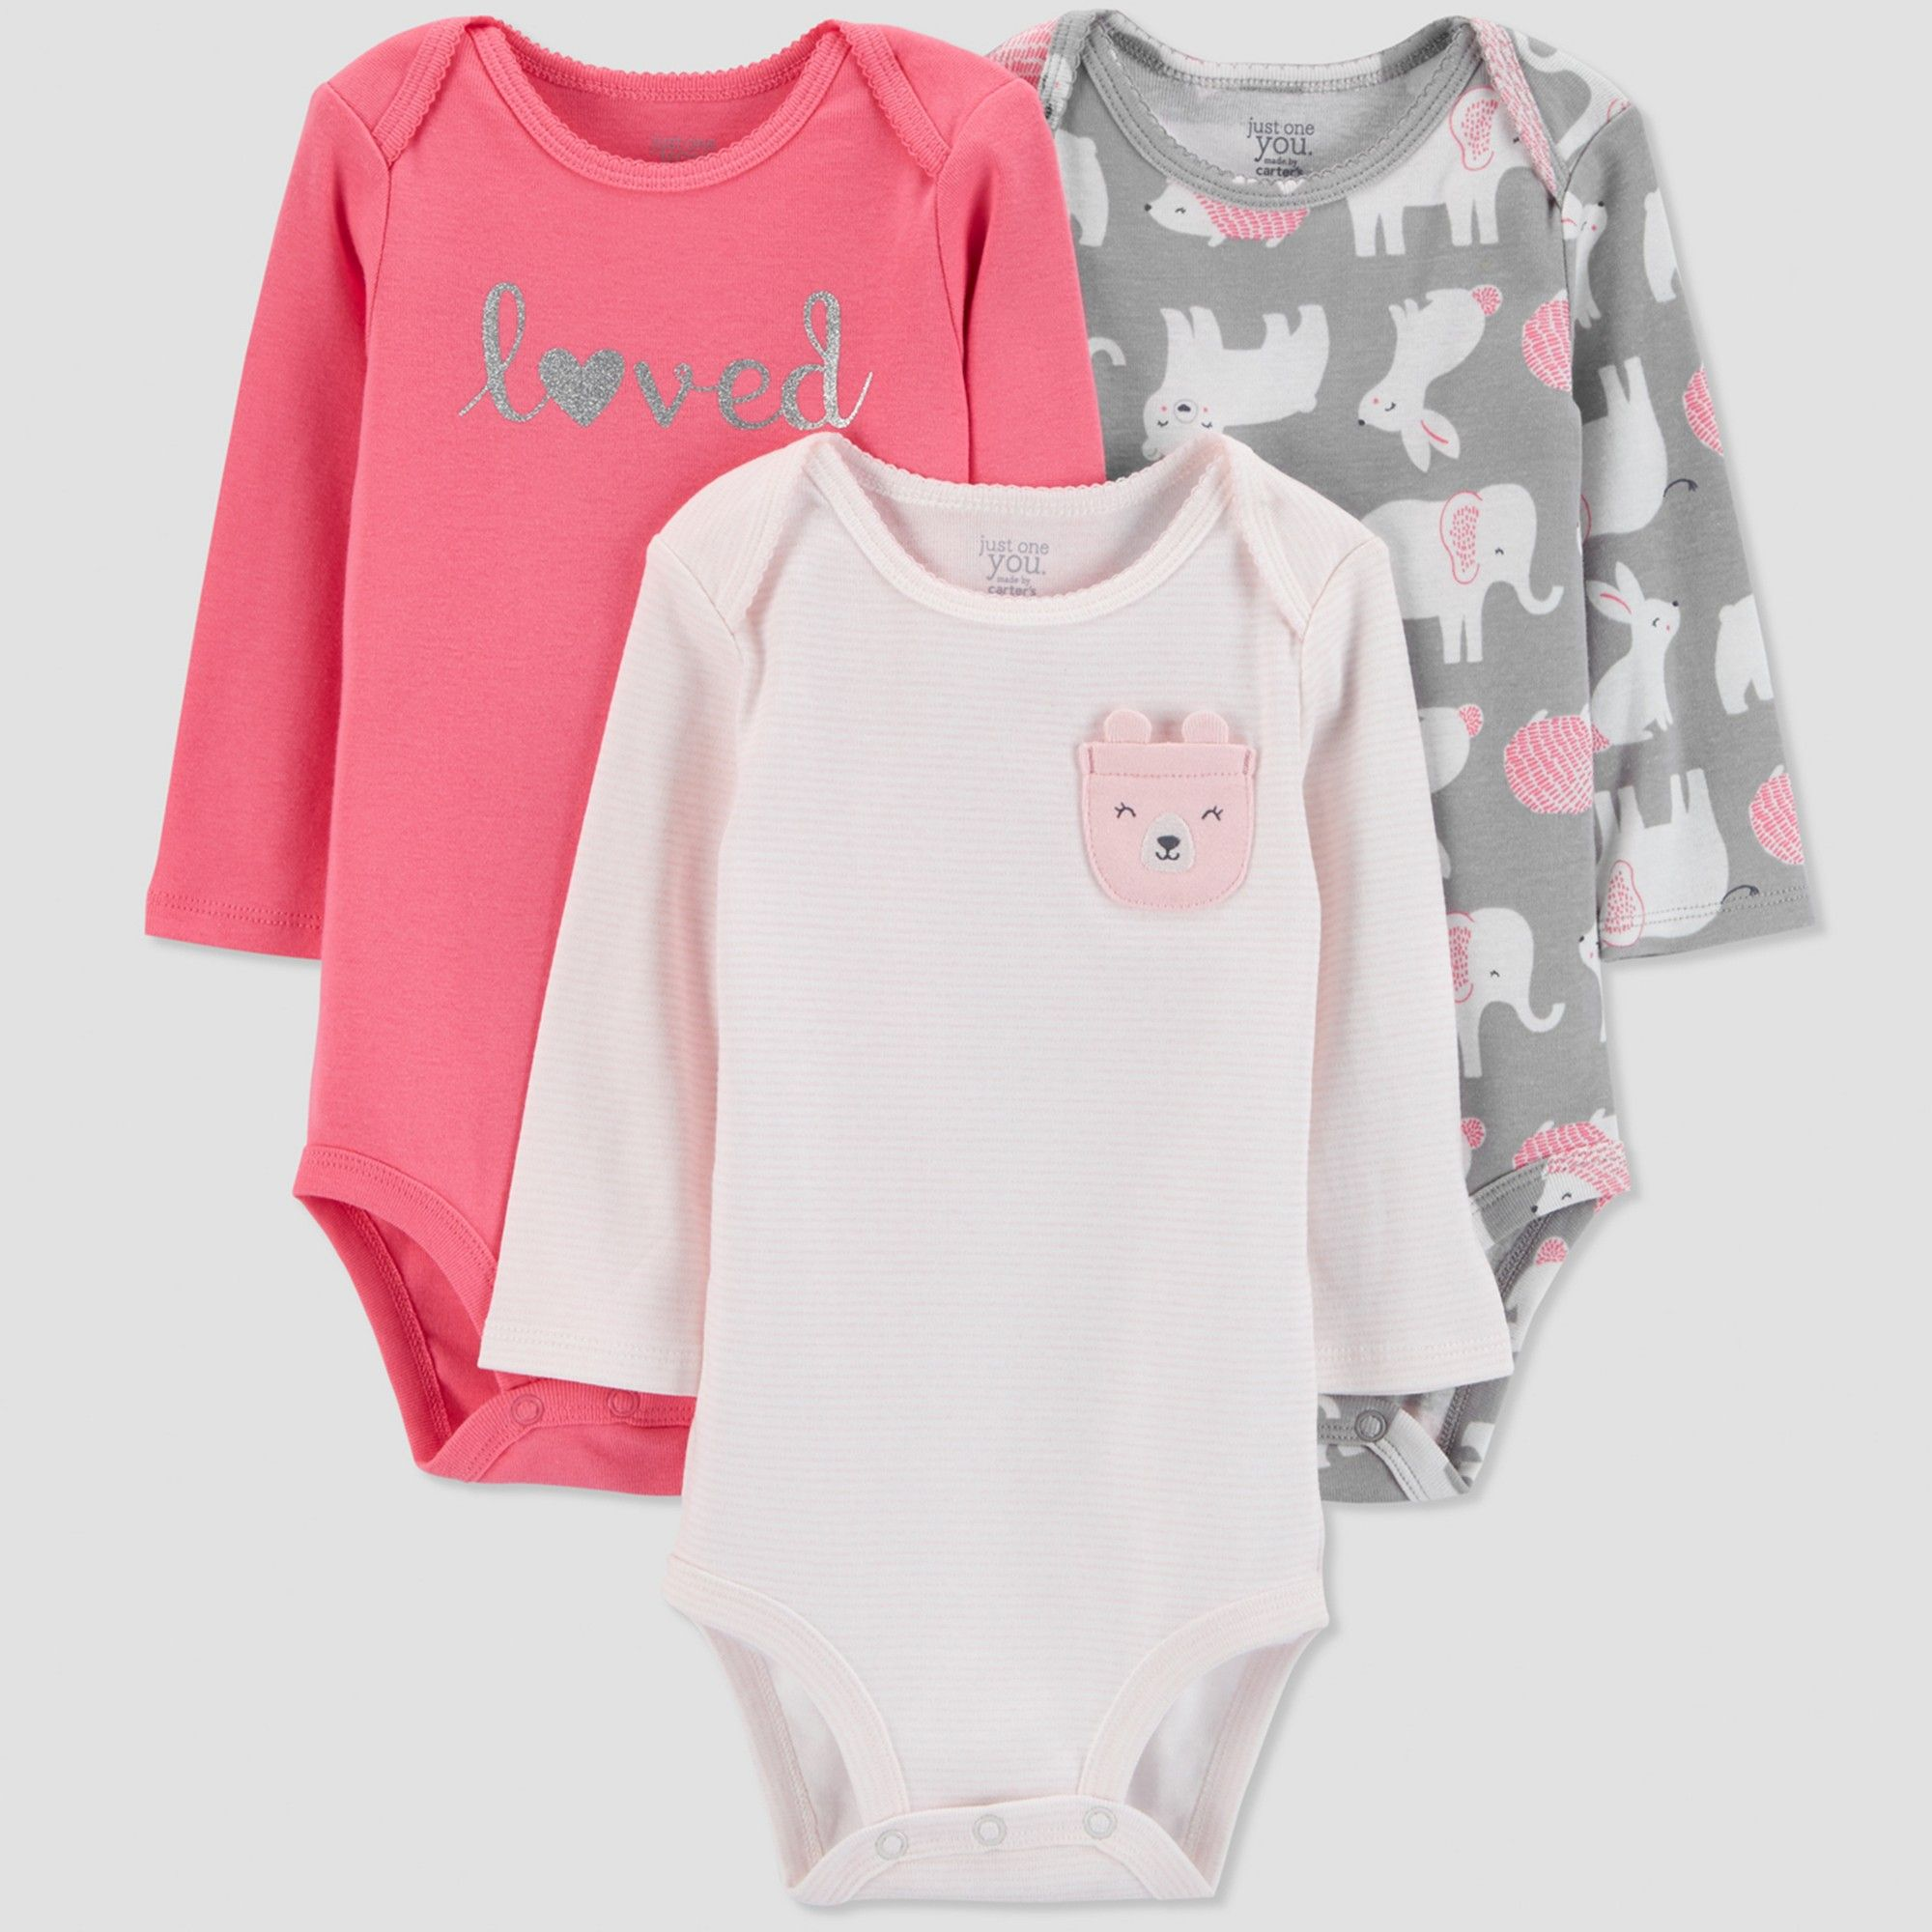 74f611653269 Baby Girls  3pk Long sleeve Love Bodysuit - Just One You made by ...